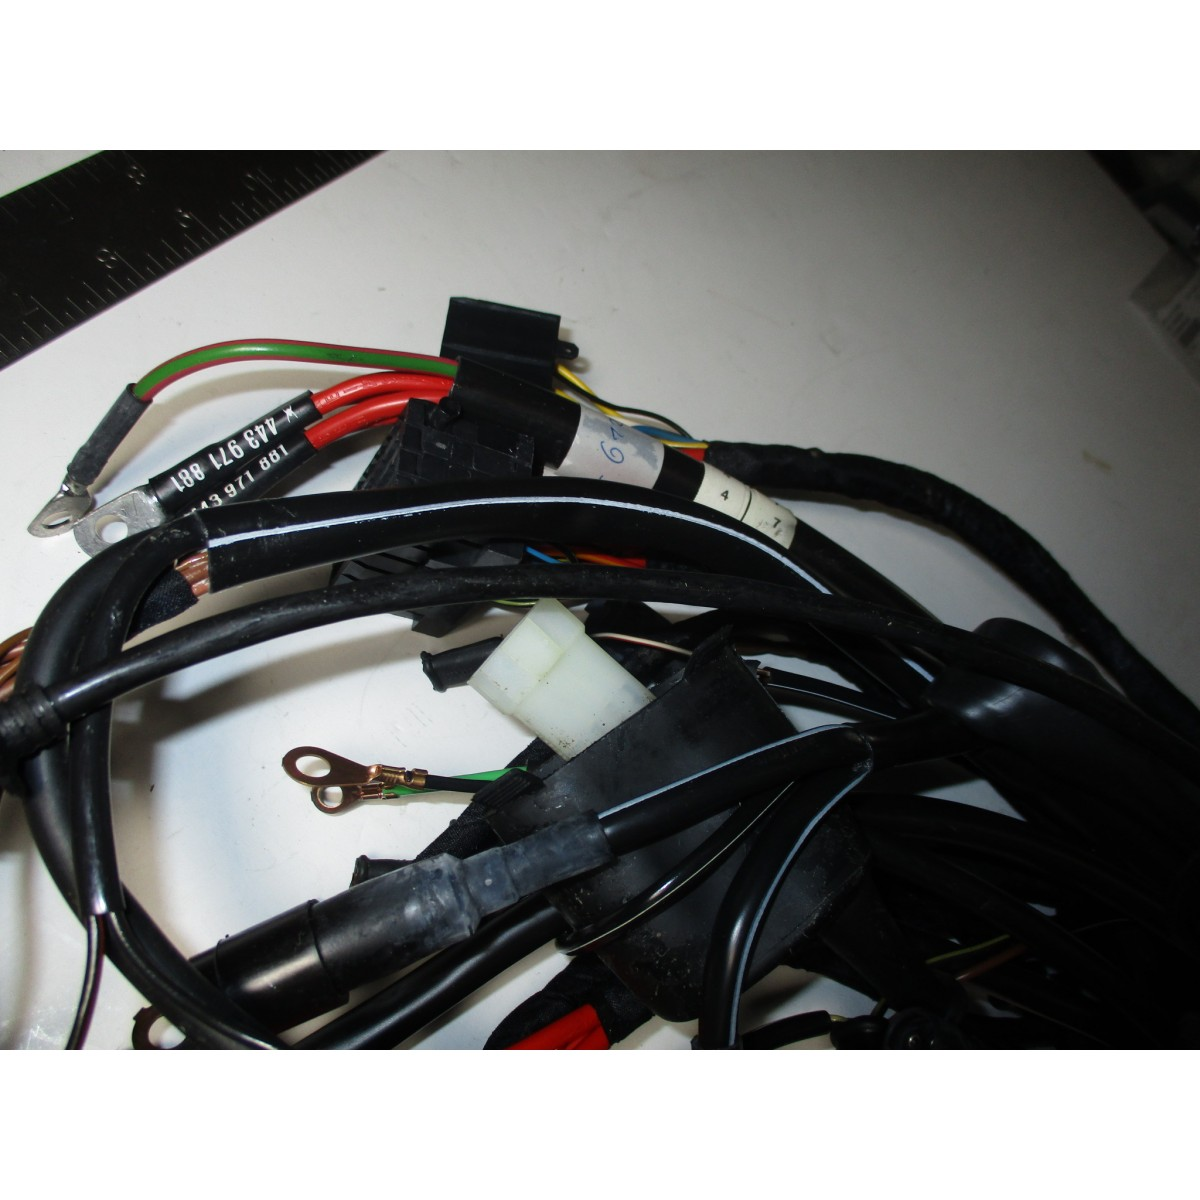 front wiring harness 944 Turbo 86 to 88944Online